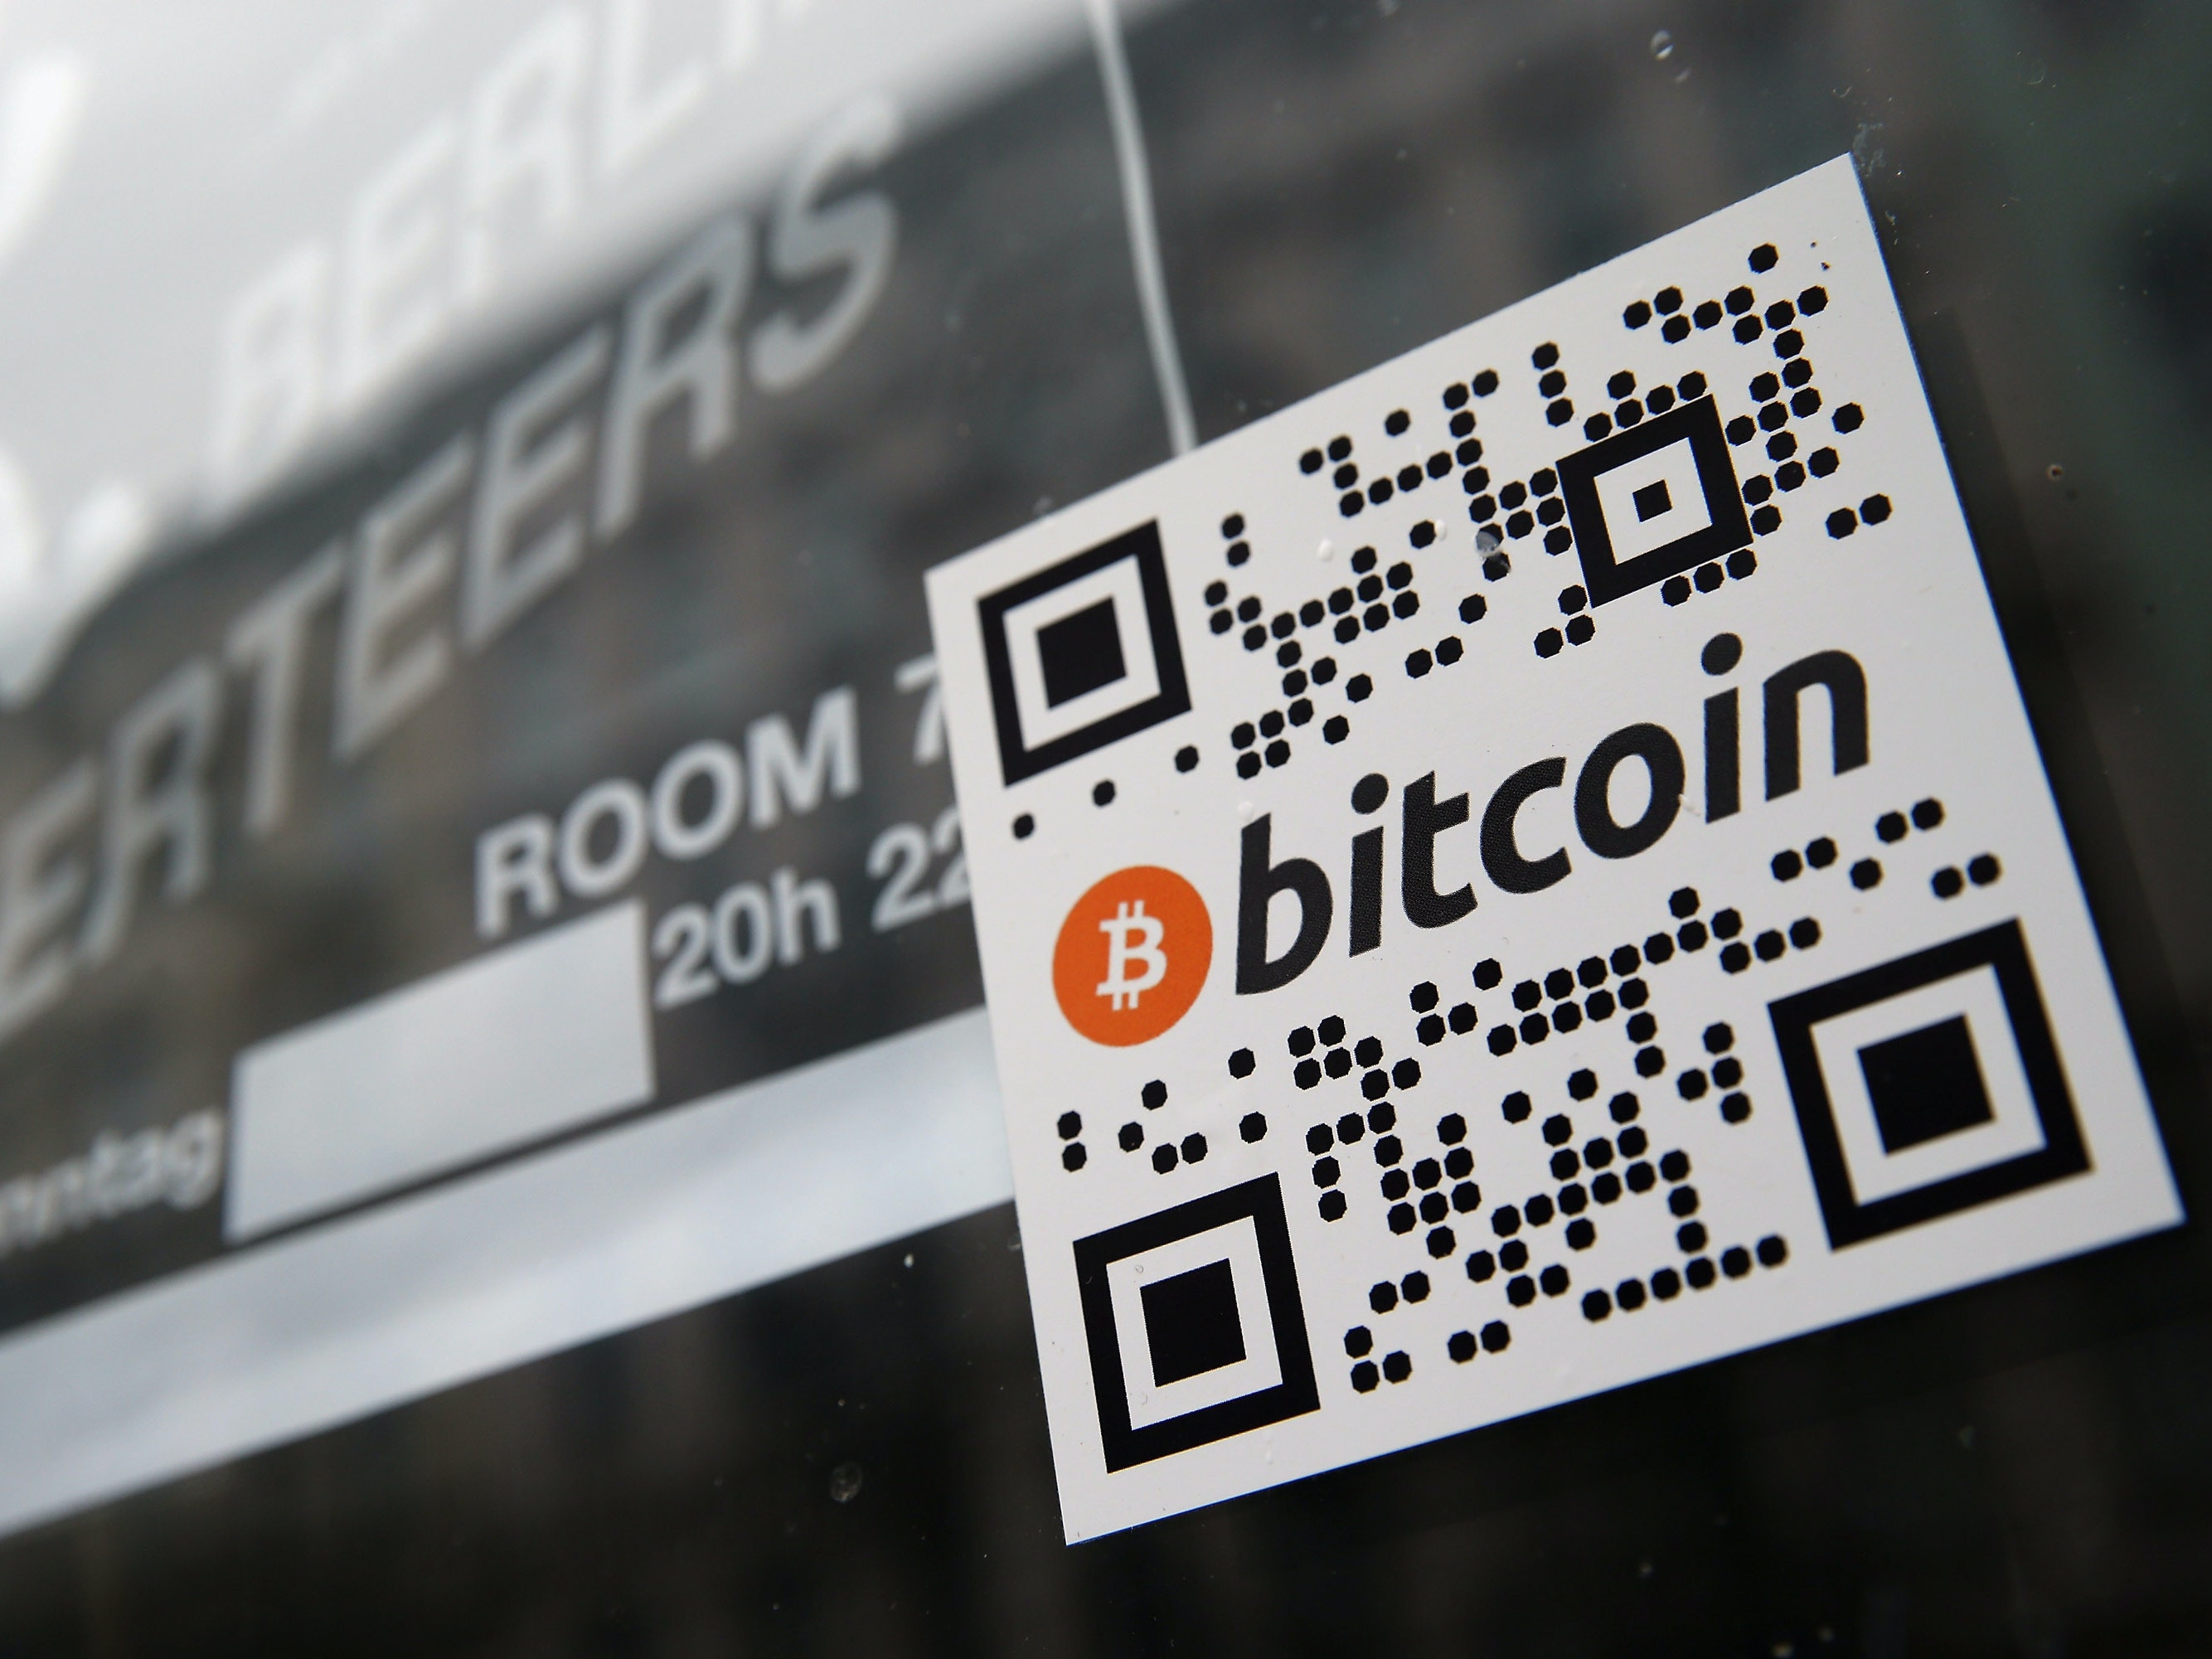 World Economic Forum: Most Banks Will Use Blockchain by 2017